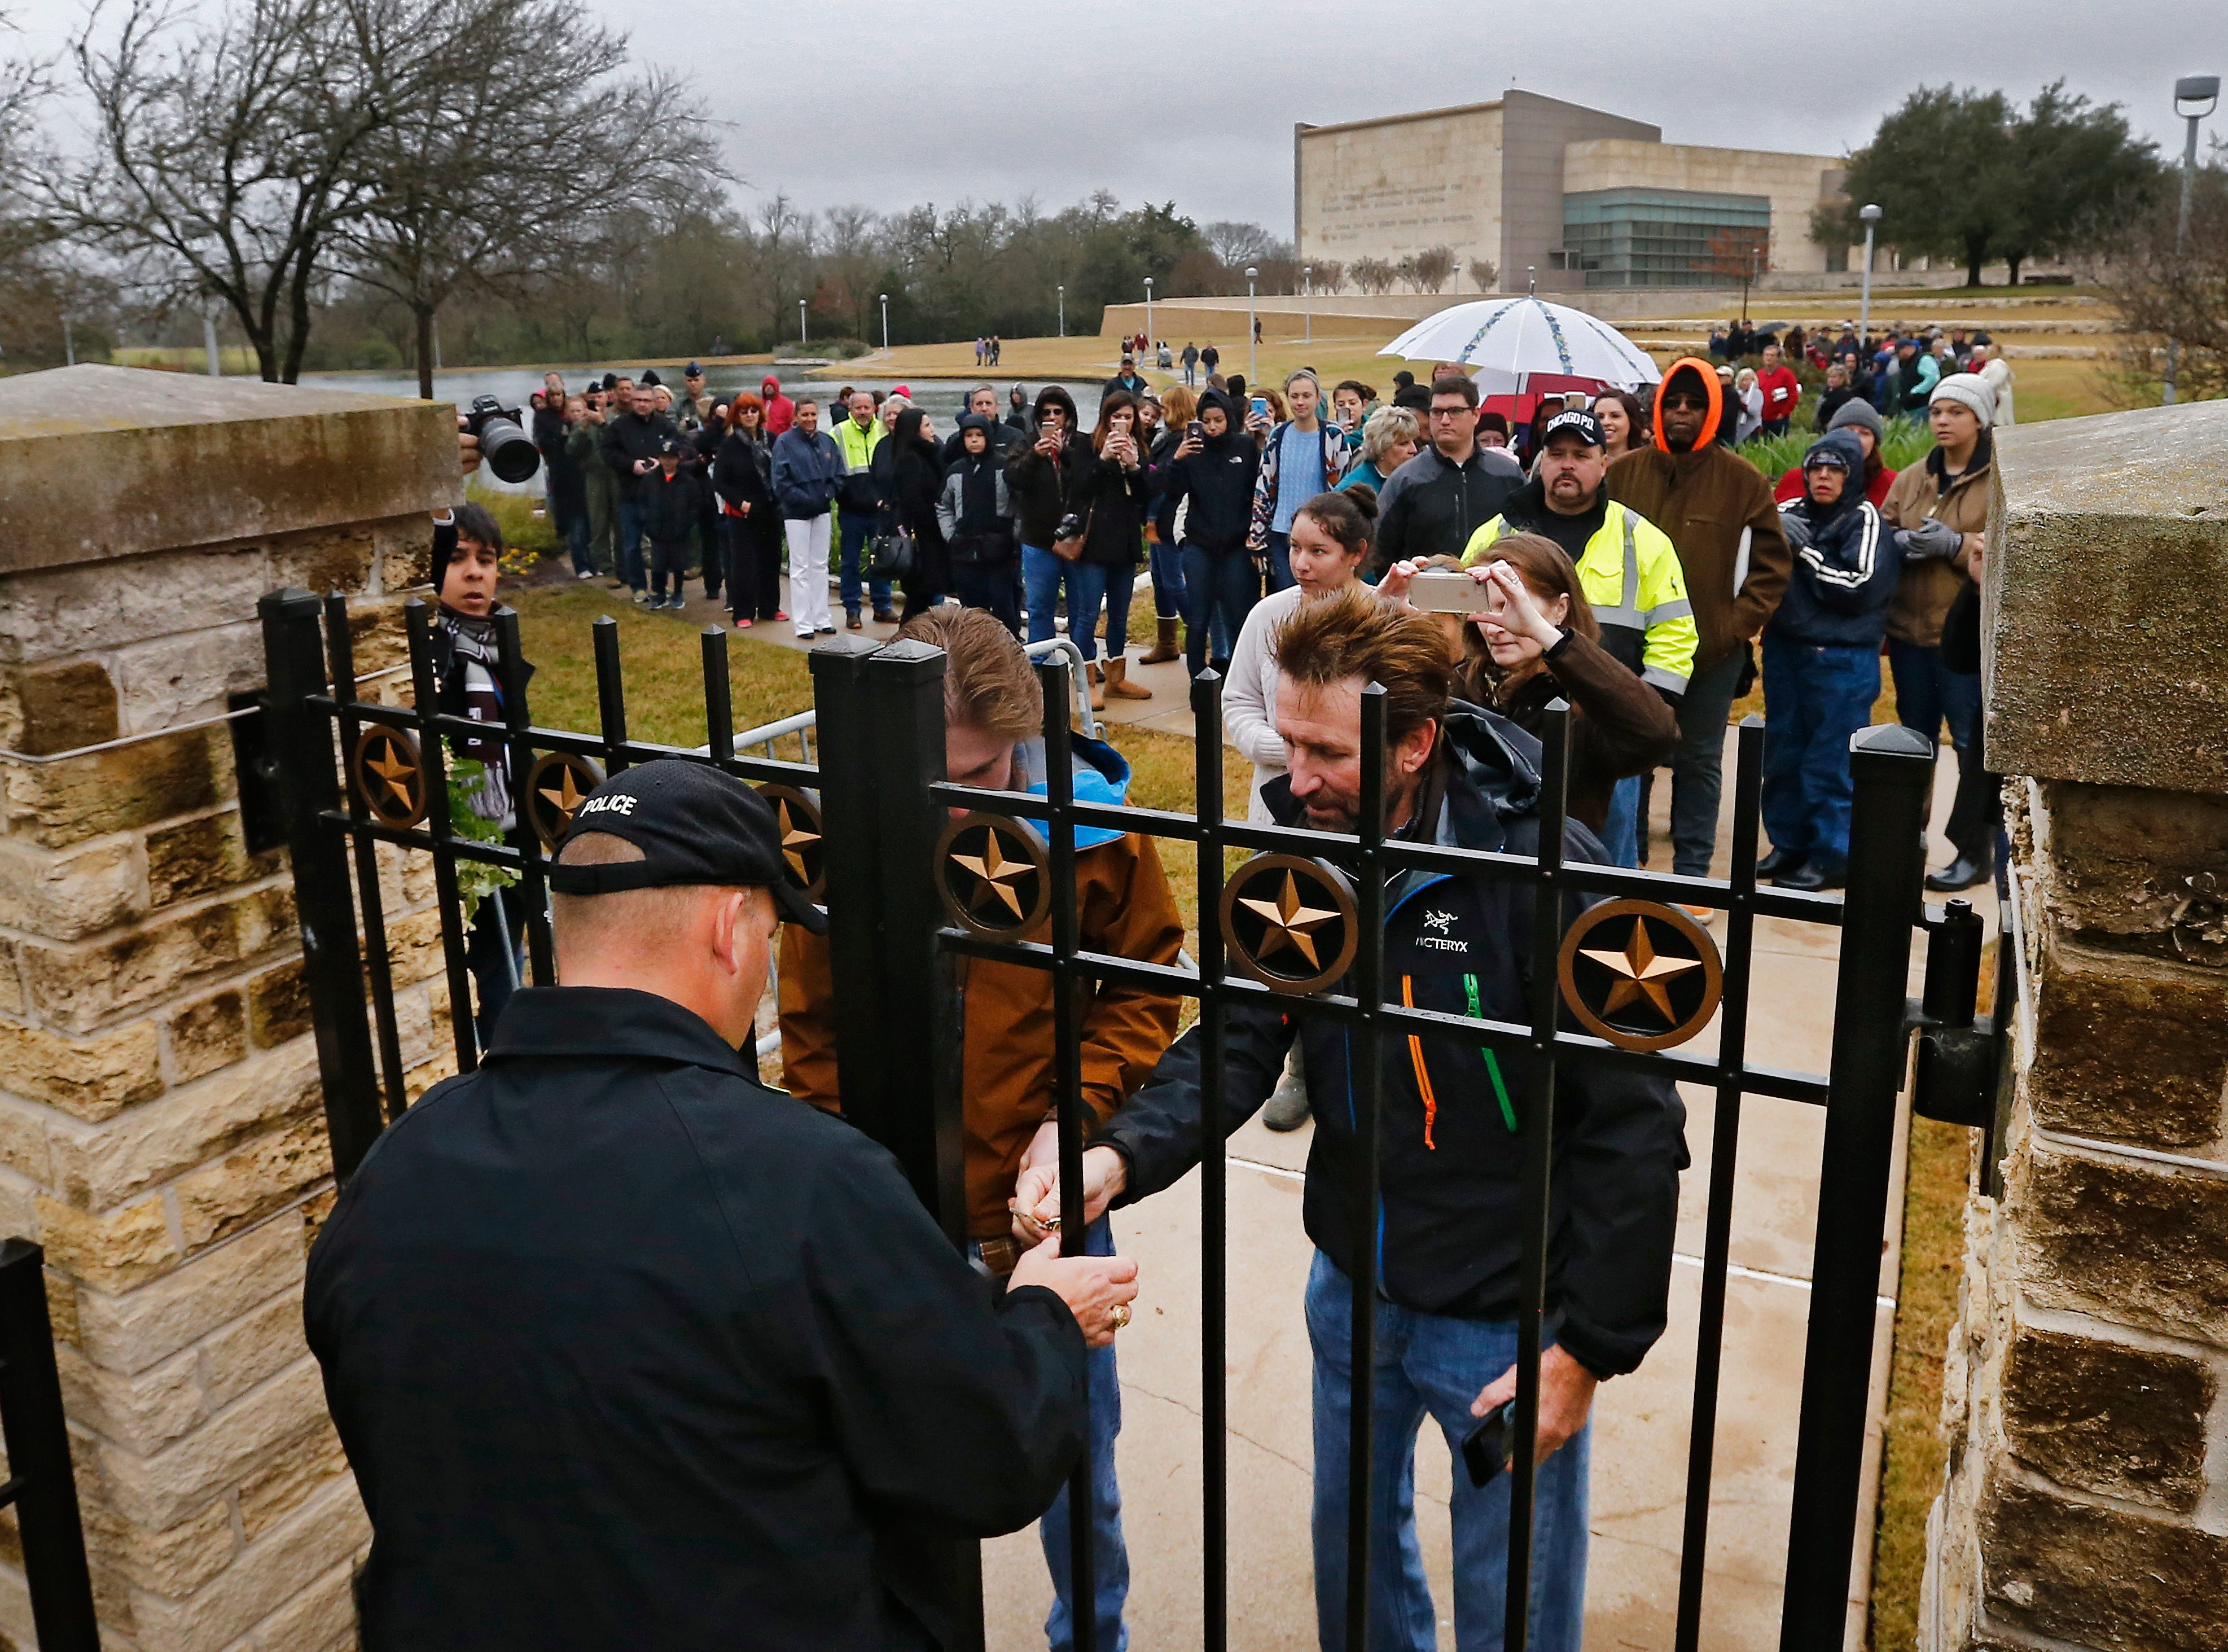 Security unlocks the gate for people waiting in line outside the gate to have a look at the gravesite of former US President George H.W. Bush, his wife Barbara Bush and their daughter Robin at the Presidential Library and Museum in College Station, Texas on Dec. 8, 2018.